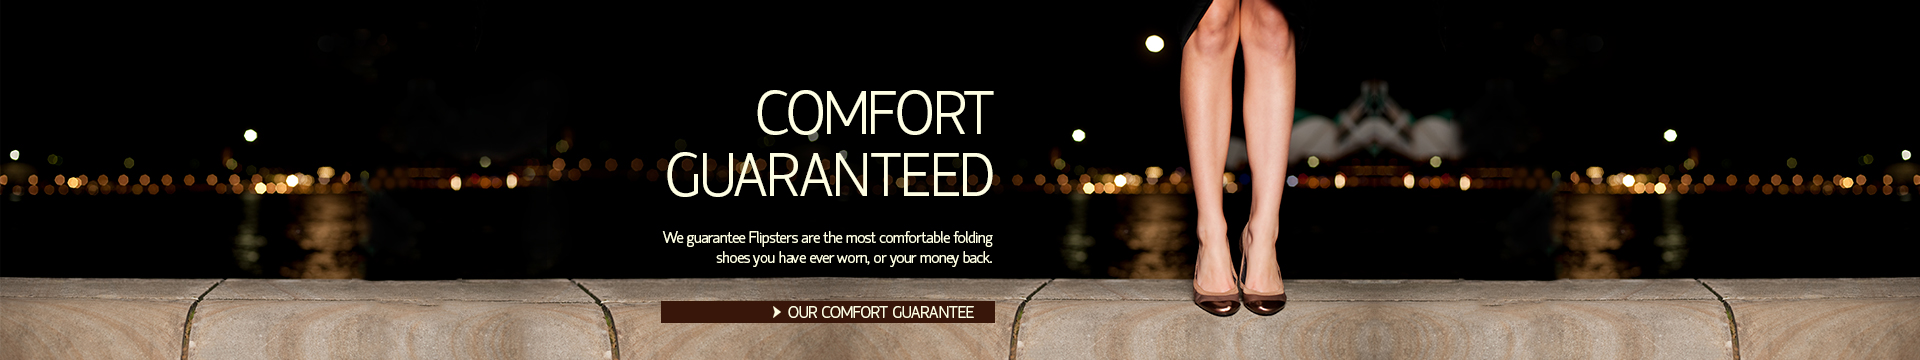 Comfort Guaranteed